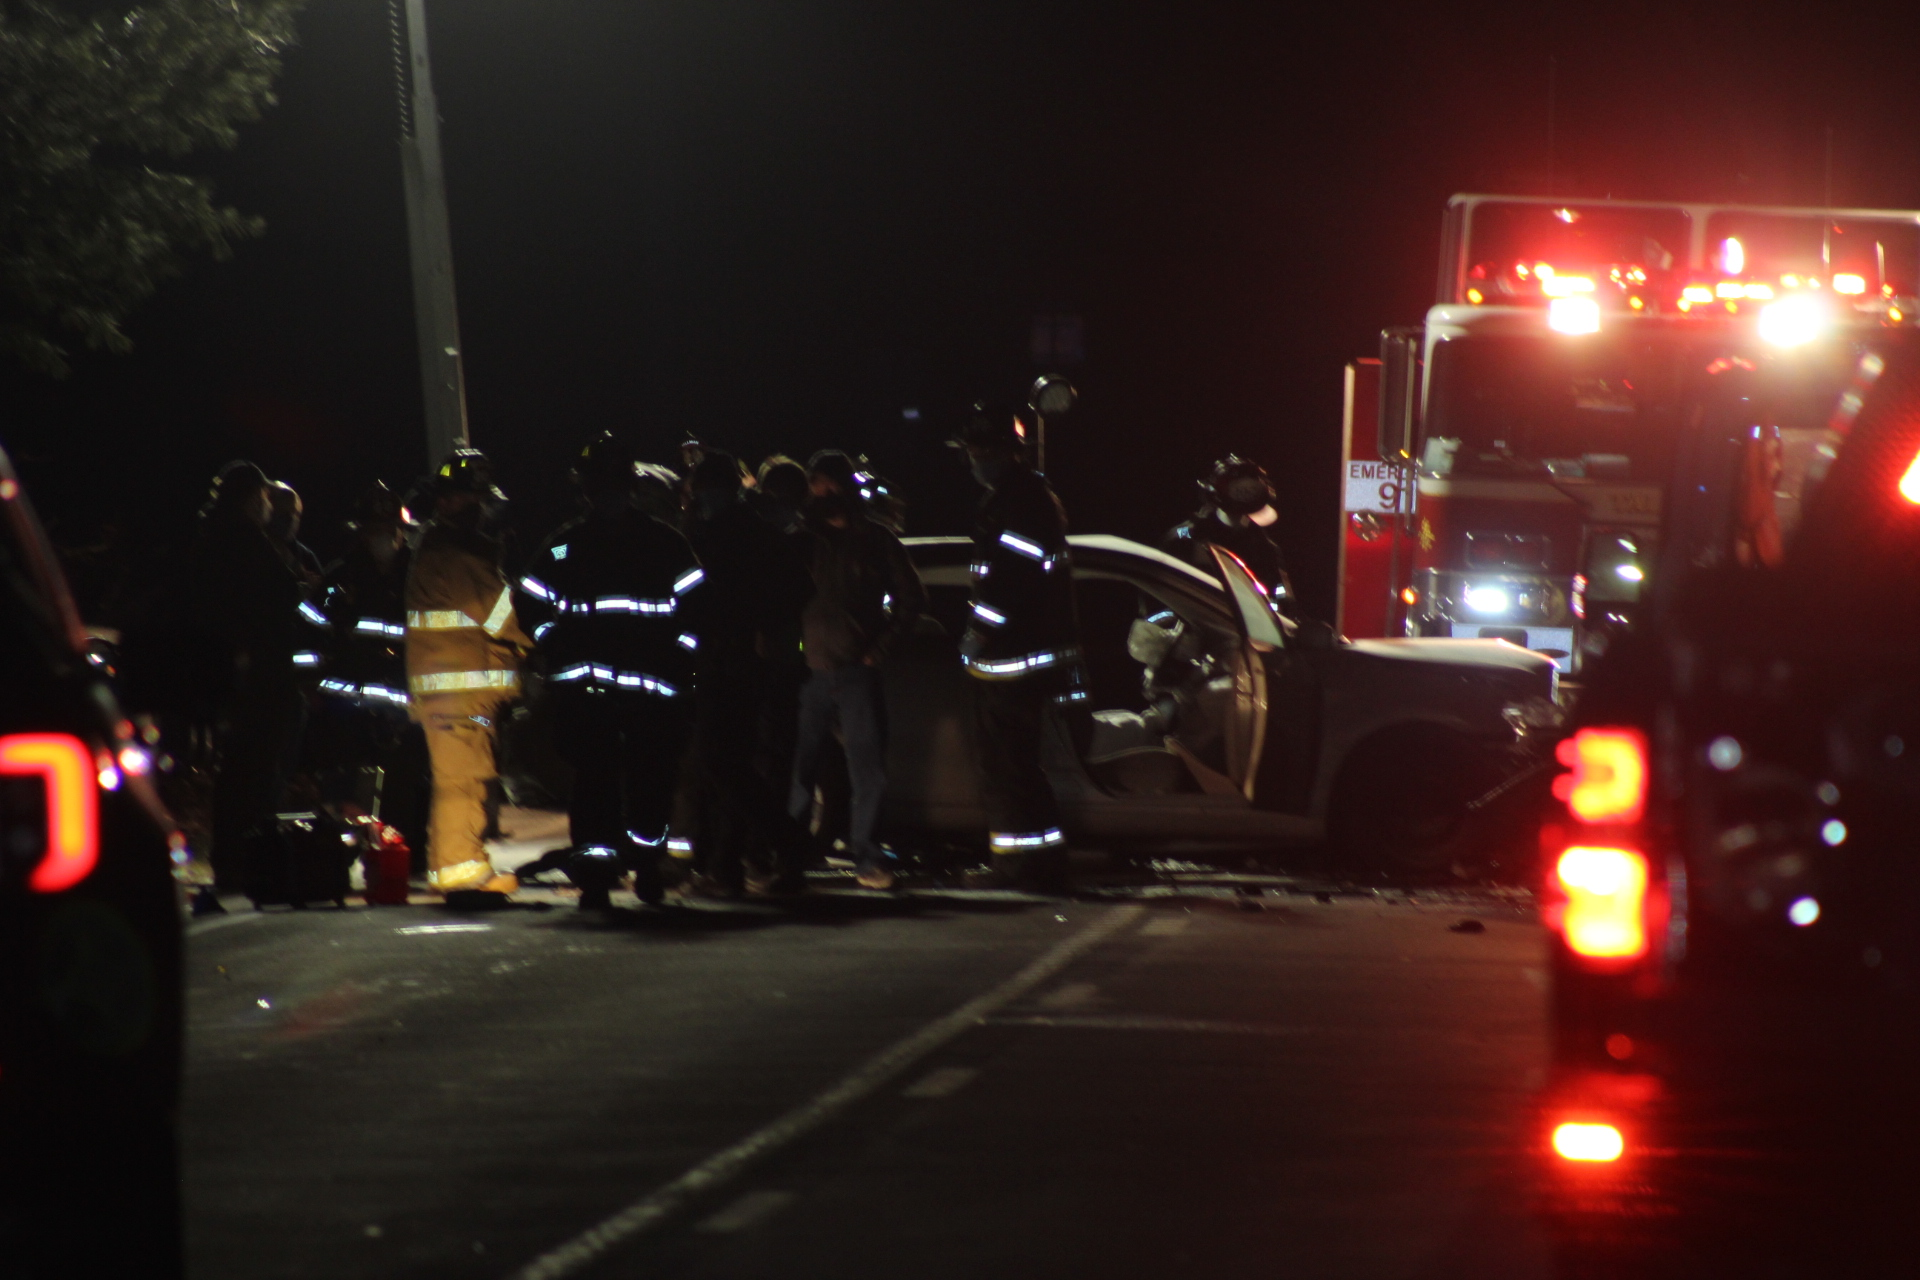 One Dead in Head on Collision on Route 202 in Ramapo